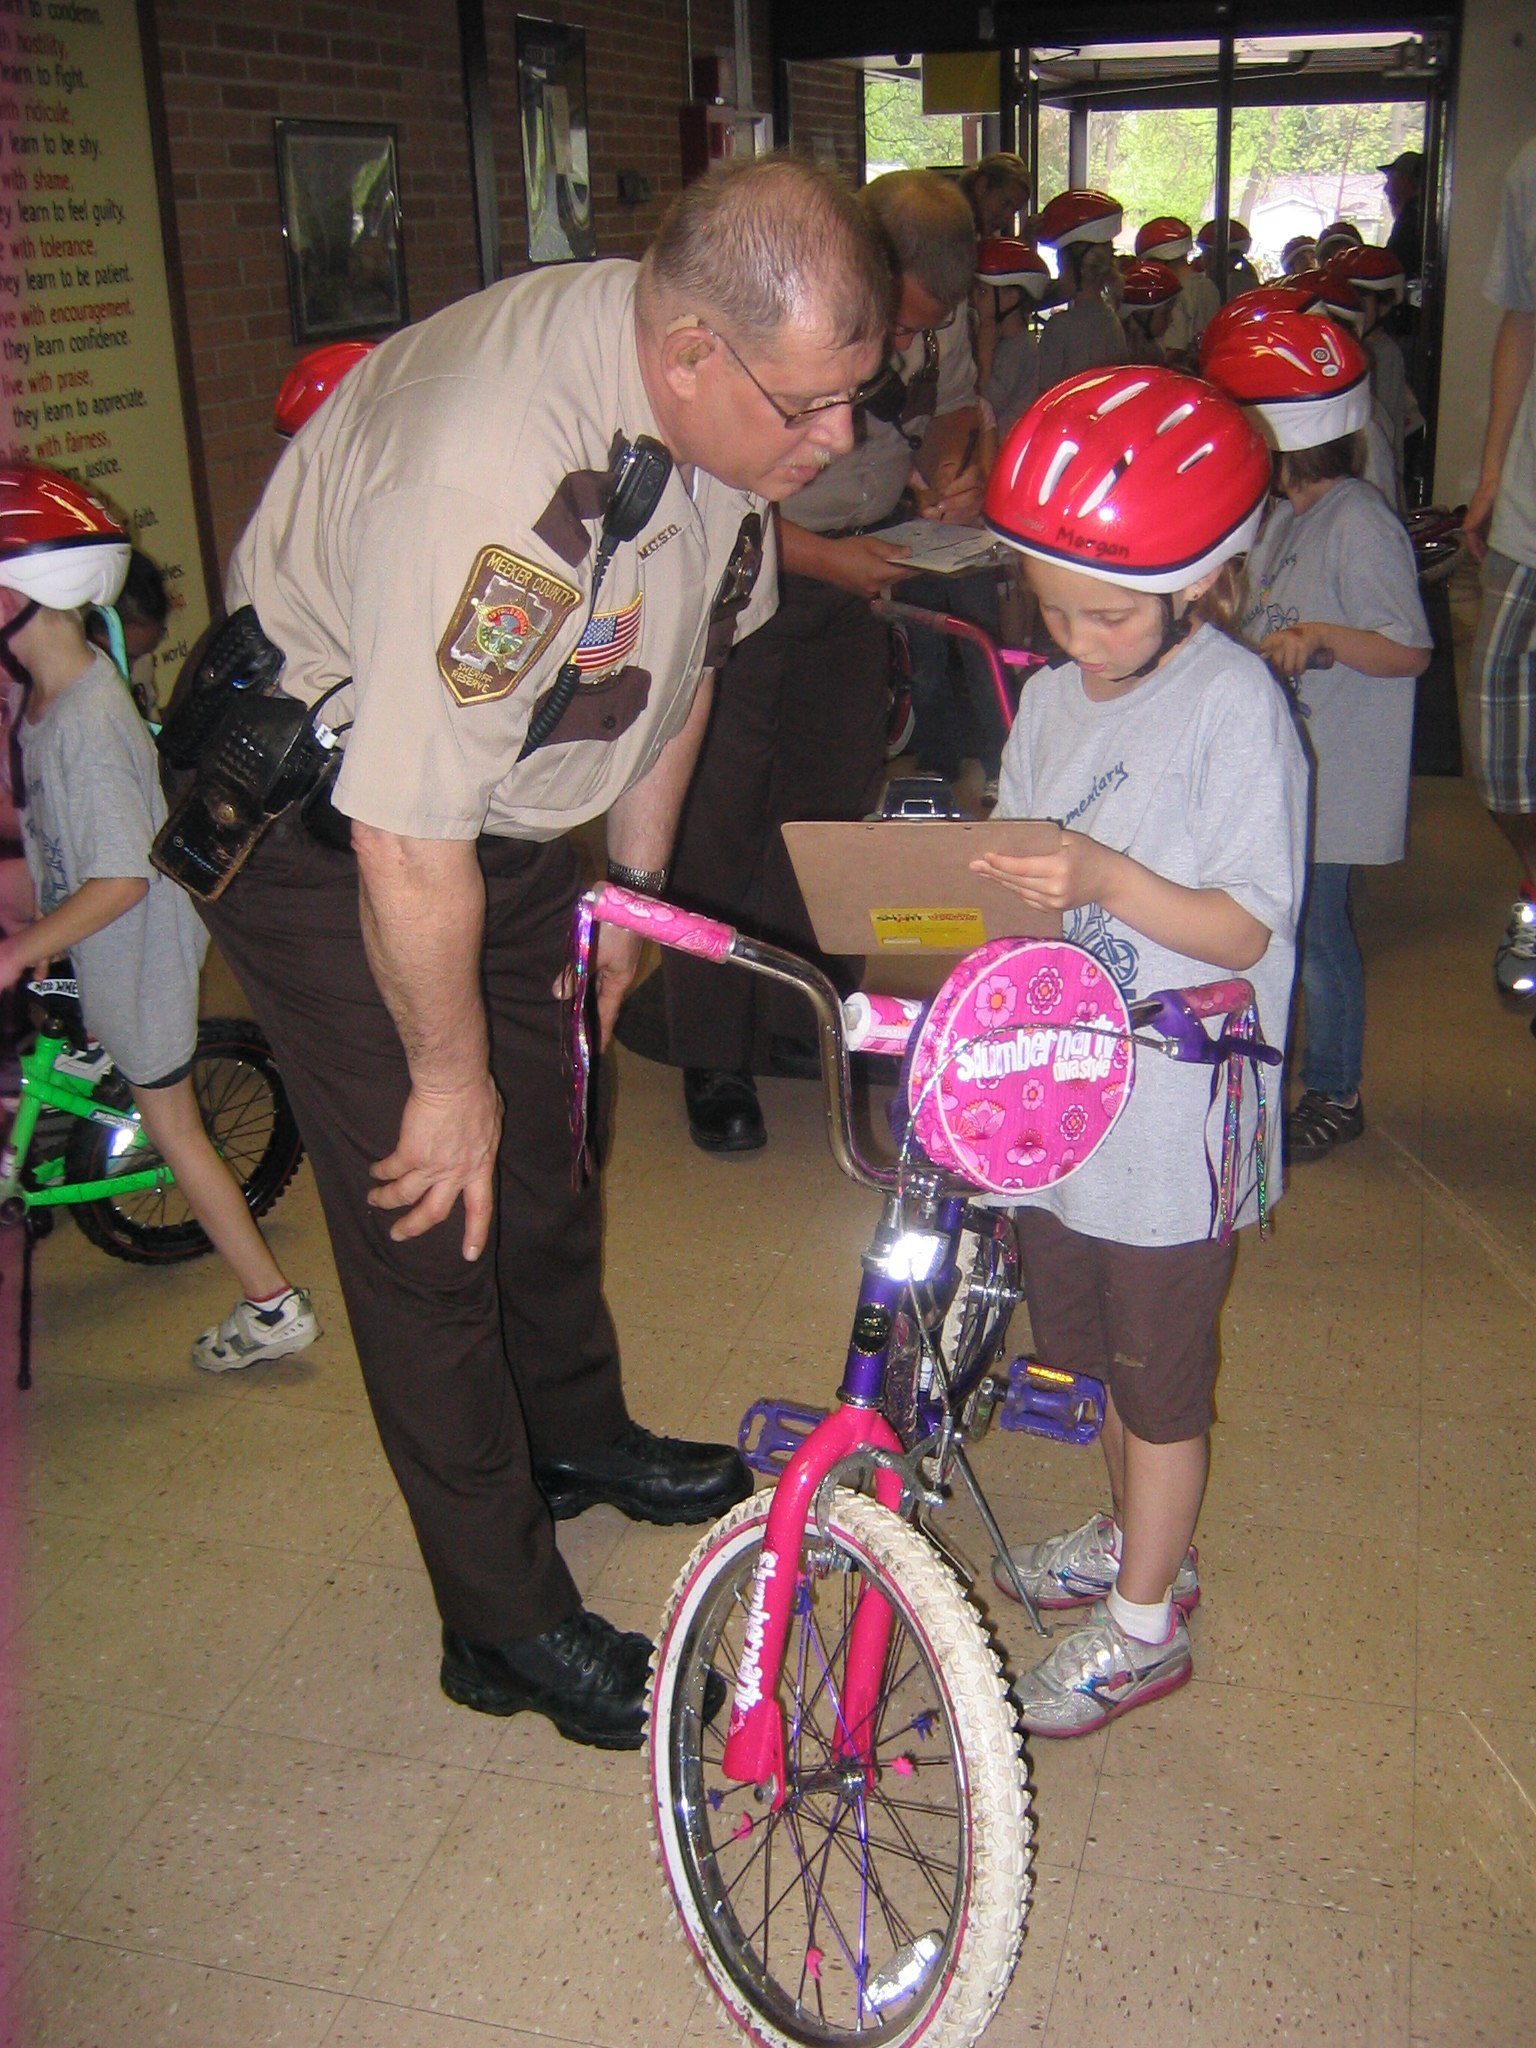 Sheriff Reservist with a Rider and Her Bike at Bike Rodeo May 20, 2011